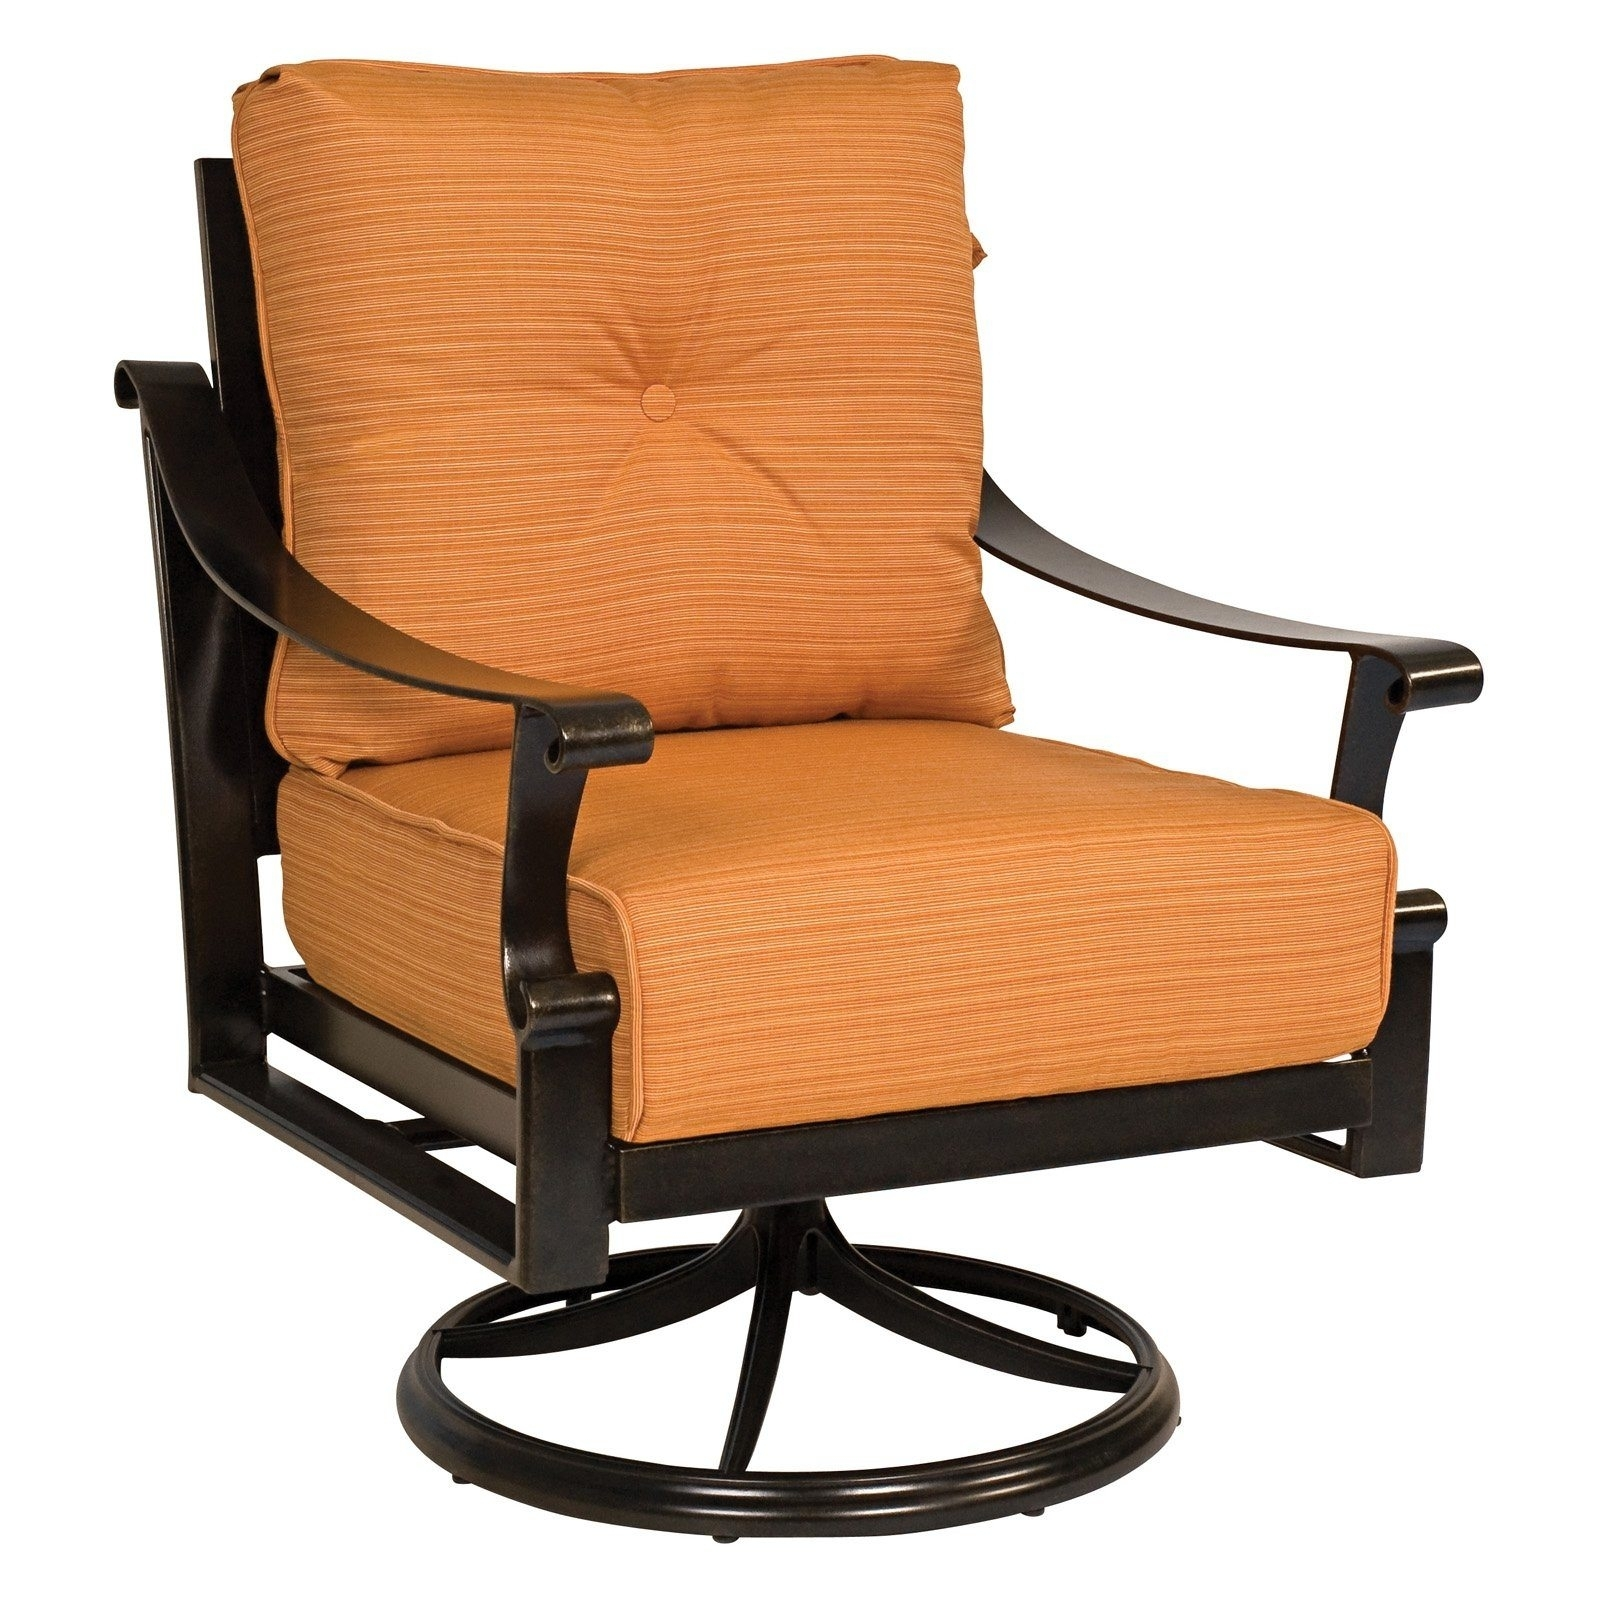 Amazing Of Swivel Rocking Patio Chairs Swivel Rocker Patio Furniture Within Patio Rocking Chairs With Covers (View 2 of 15)